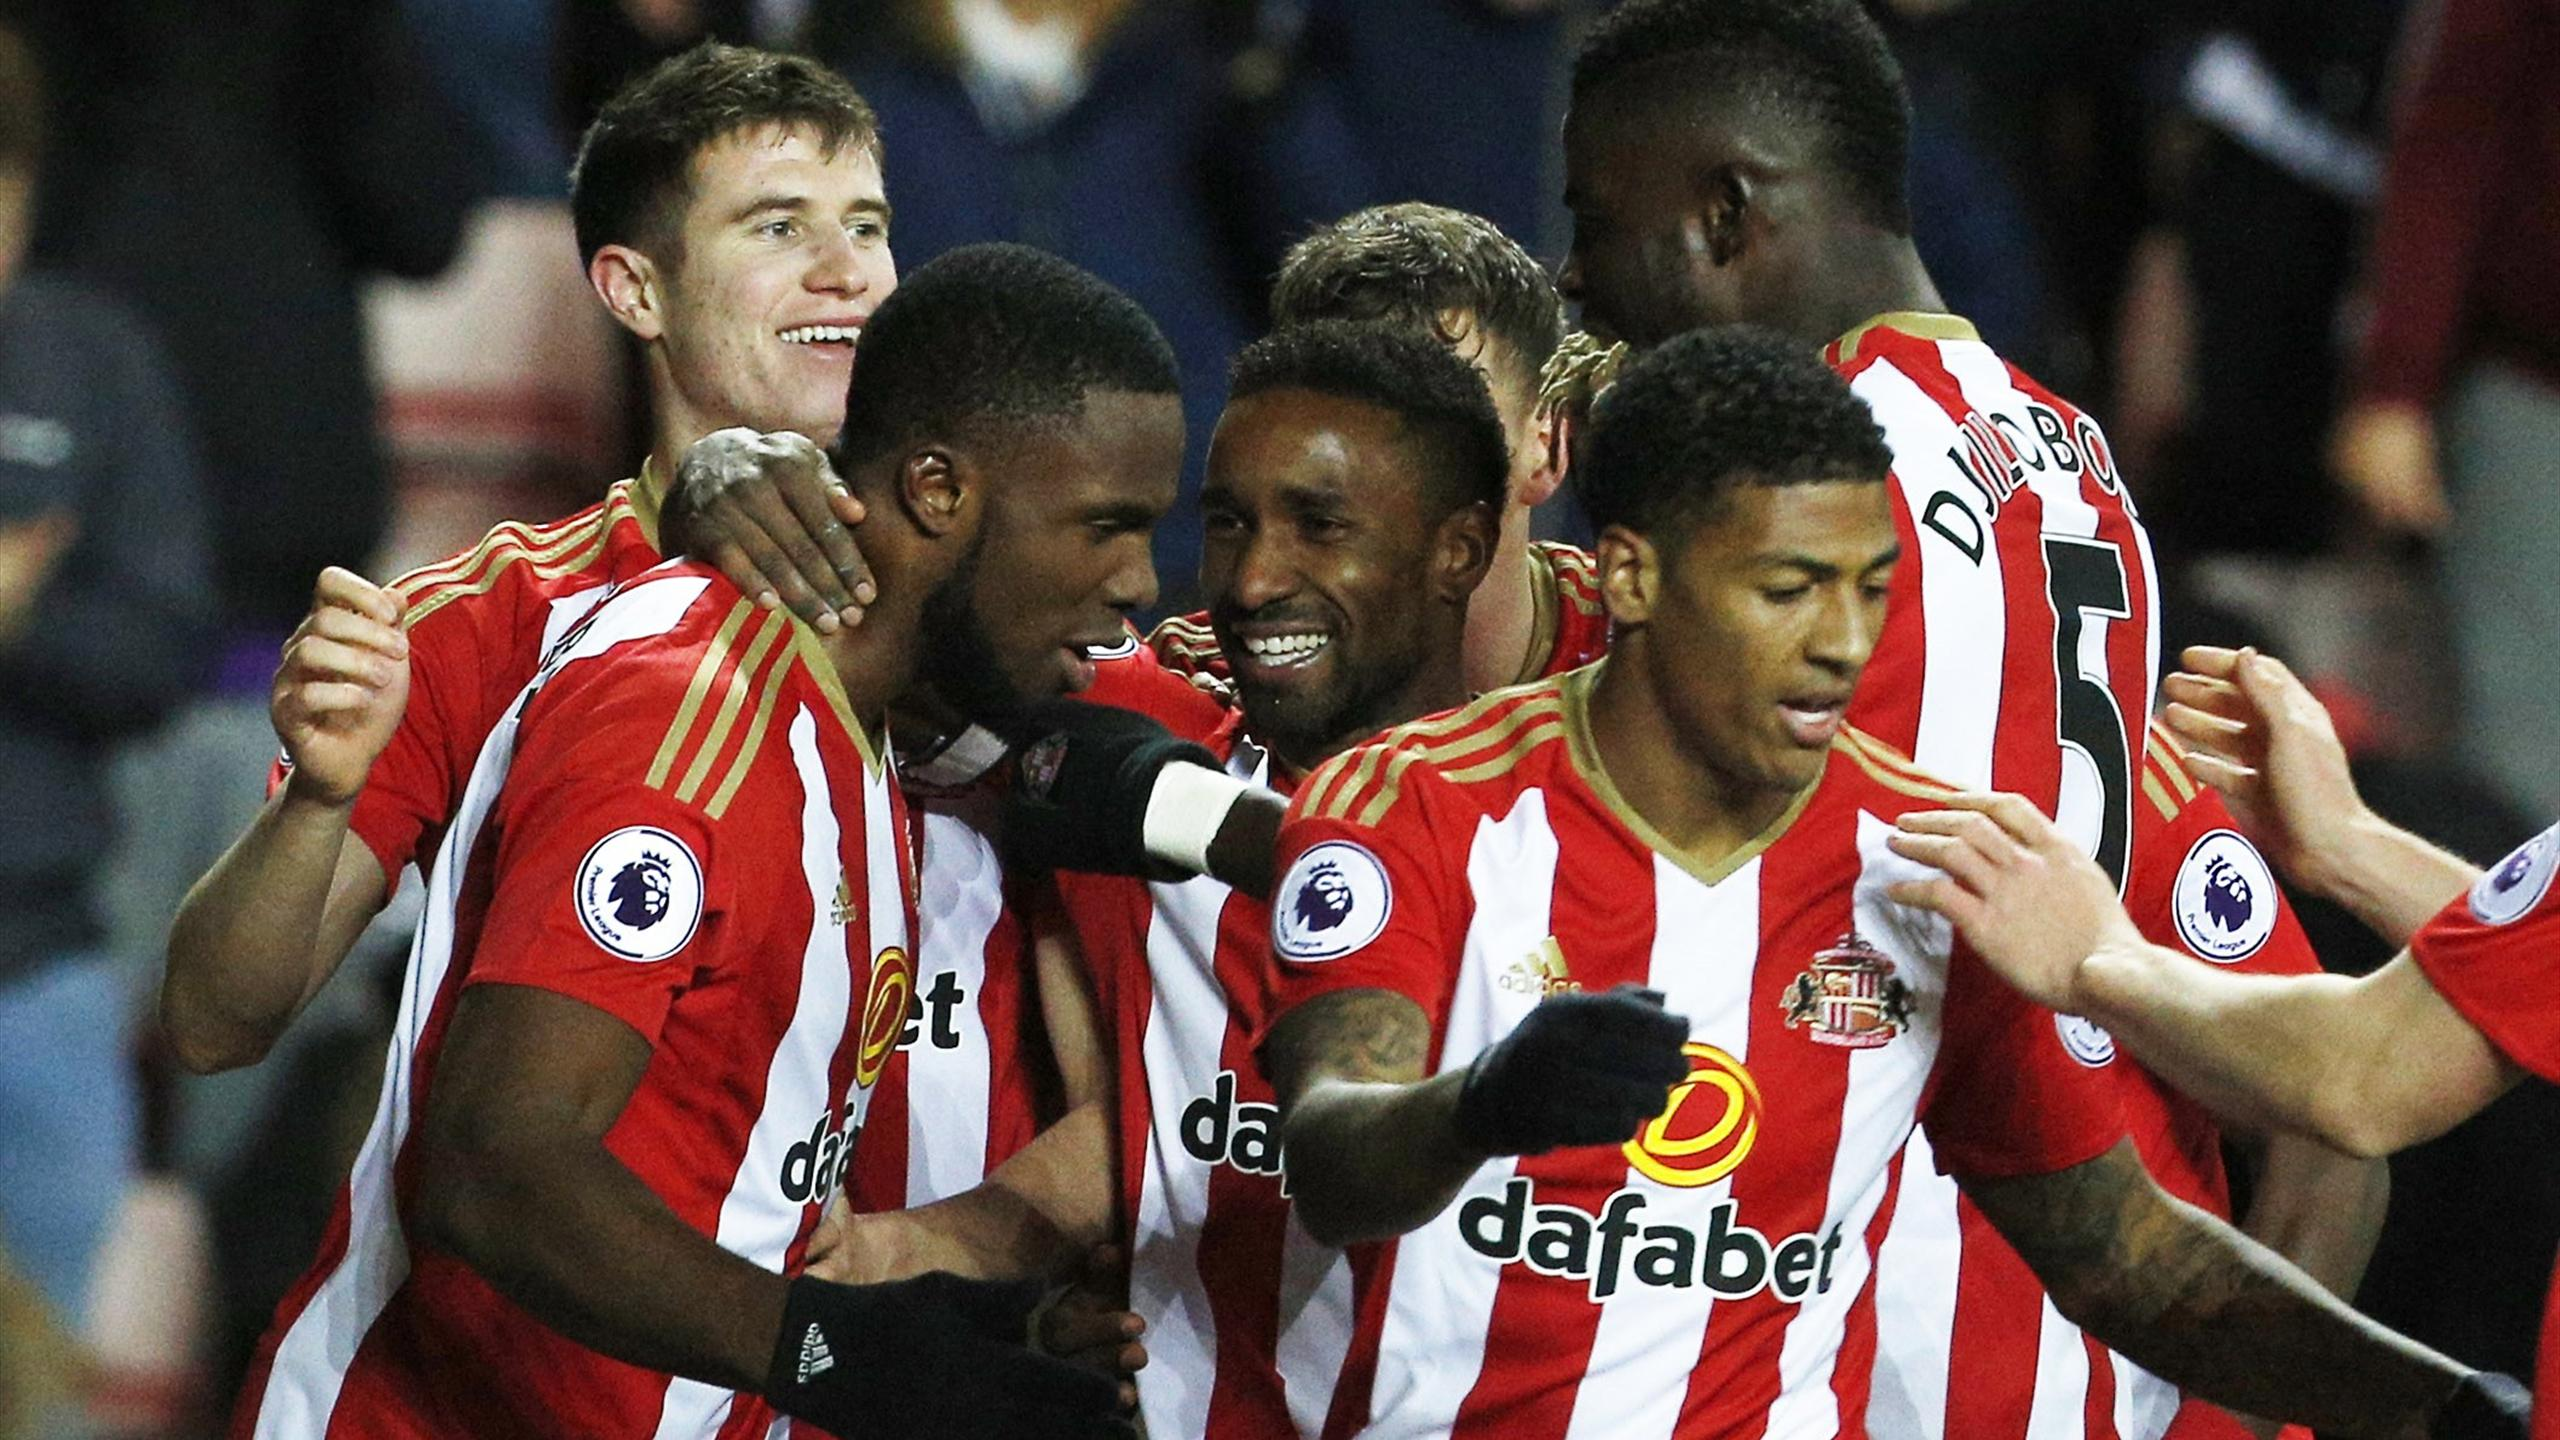 Victor Anichebe scored twice as Sunderland recorded a vital 3-0 win at home to Hull City in the Premier League.